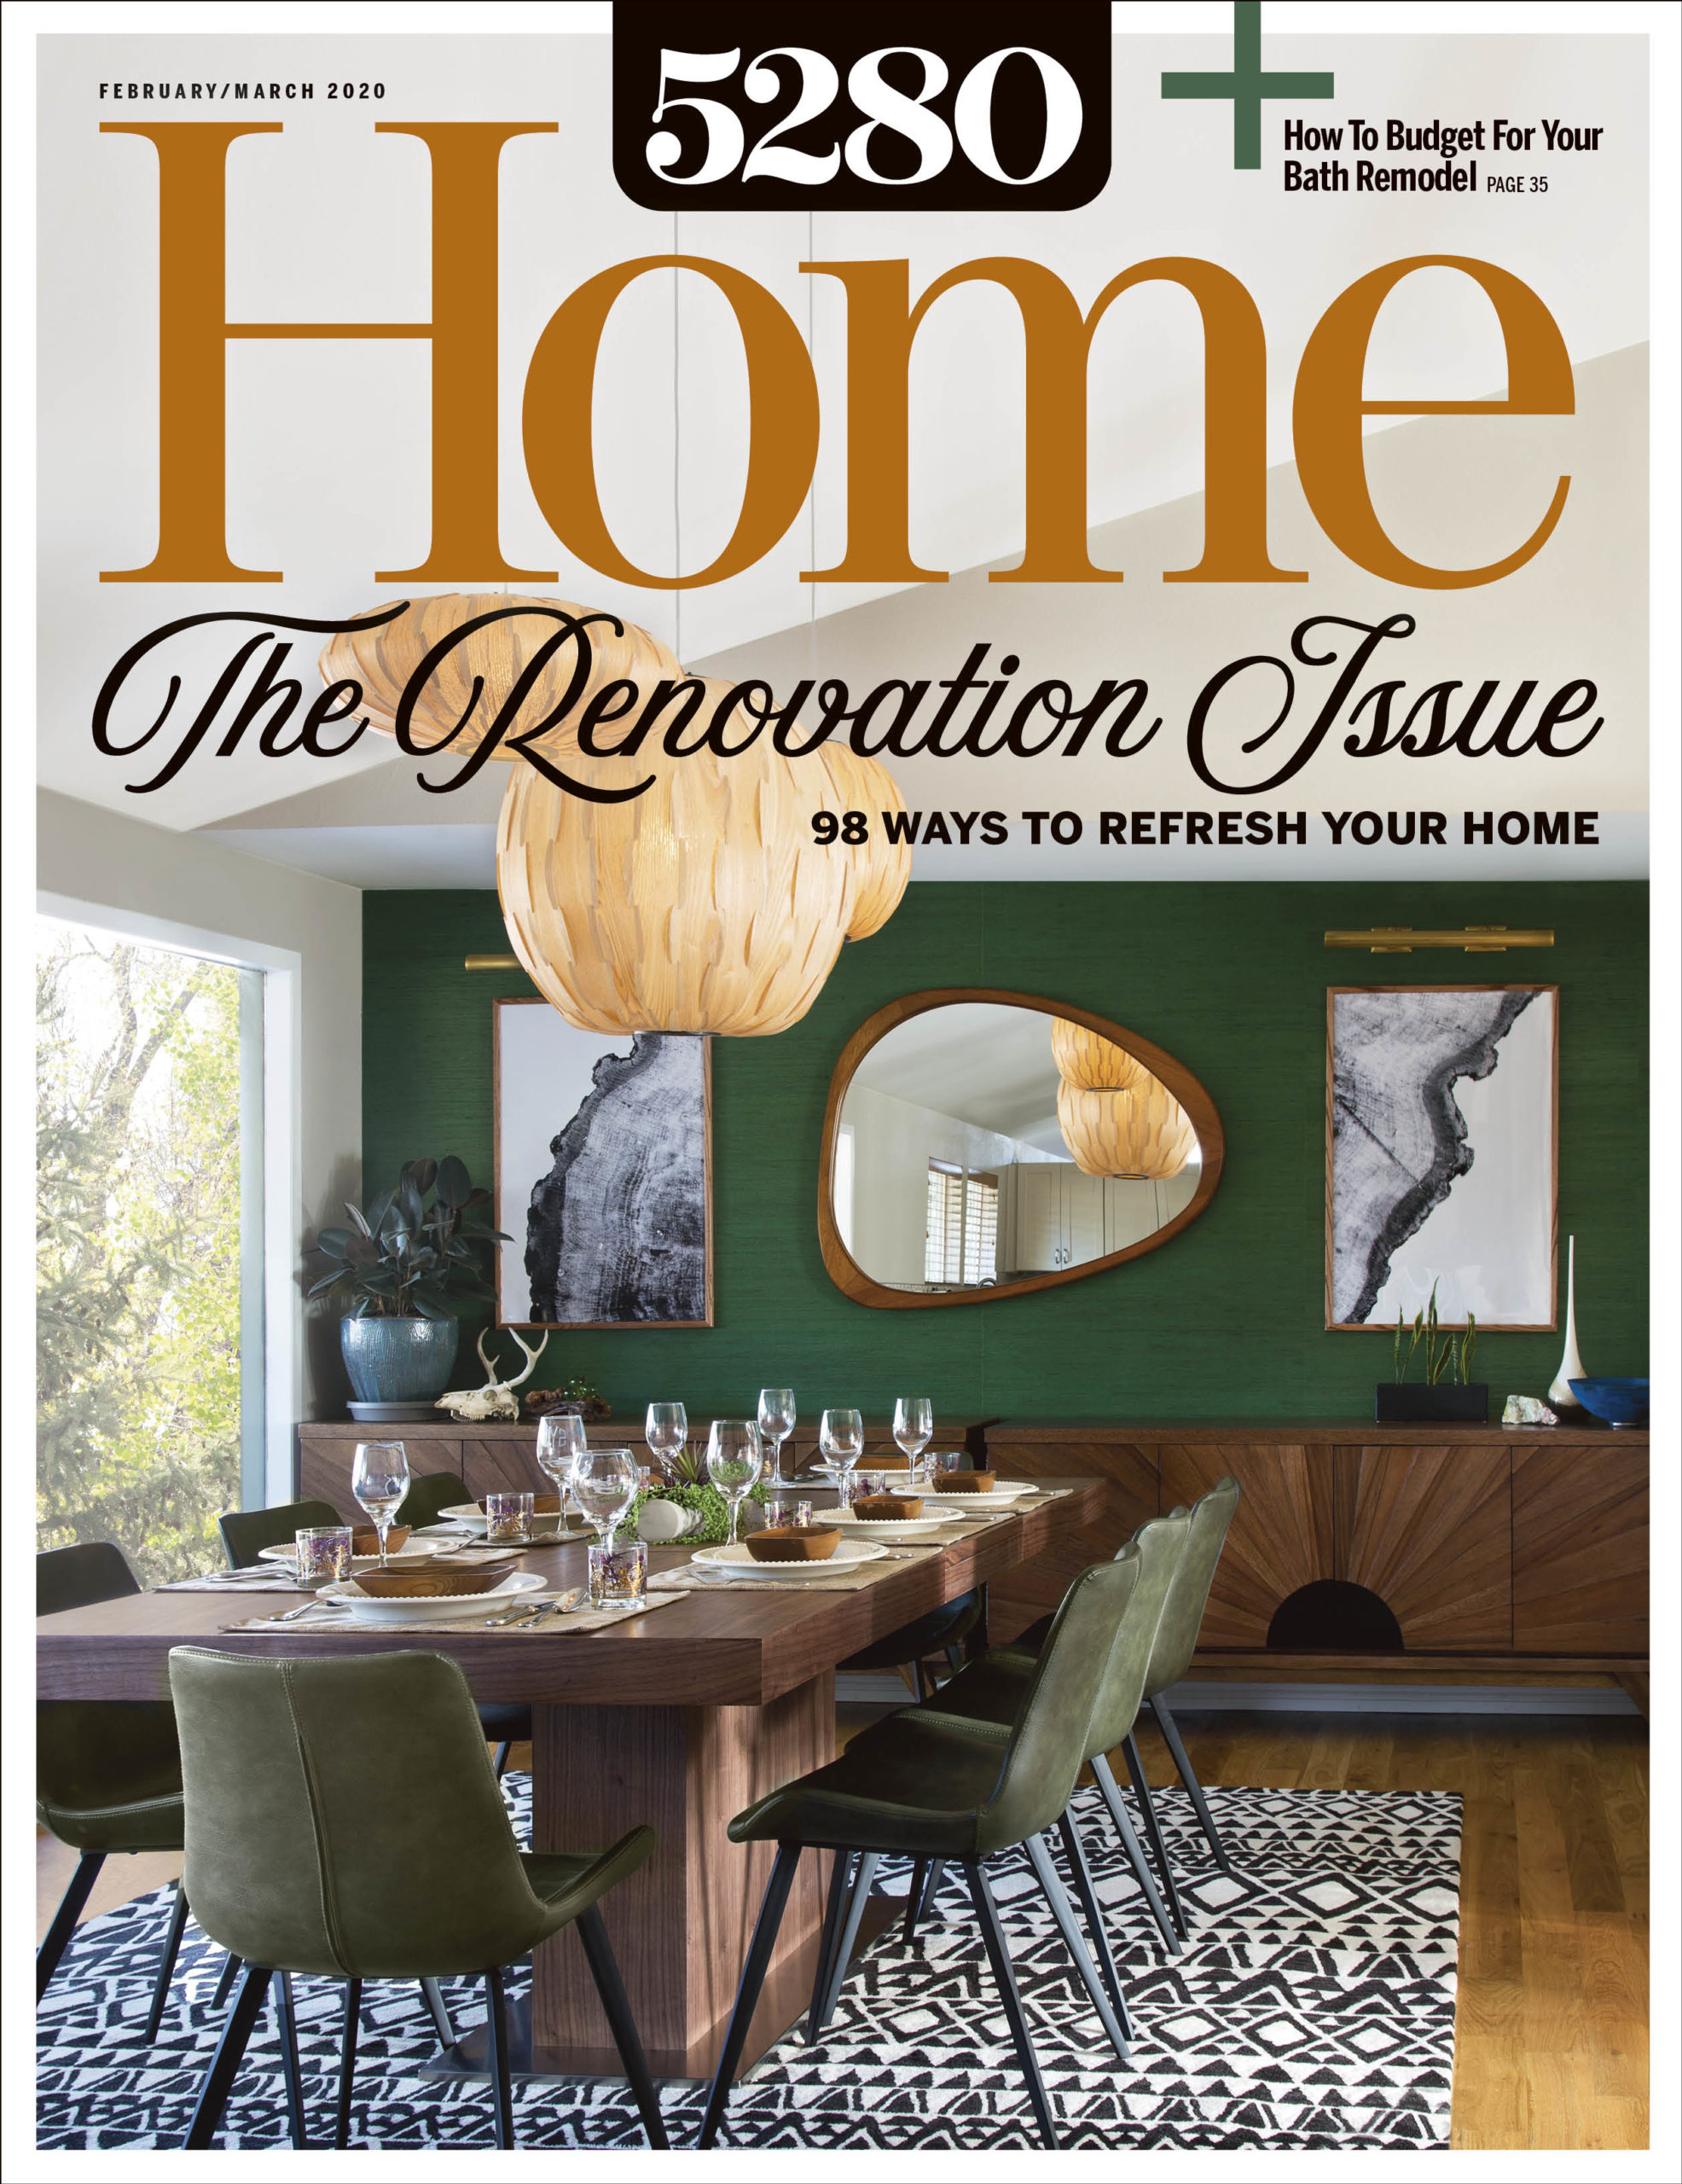 5280 Home February/March 2020